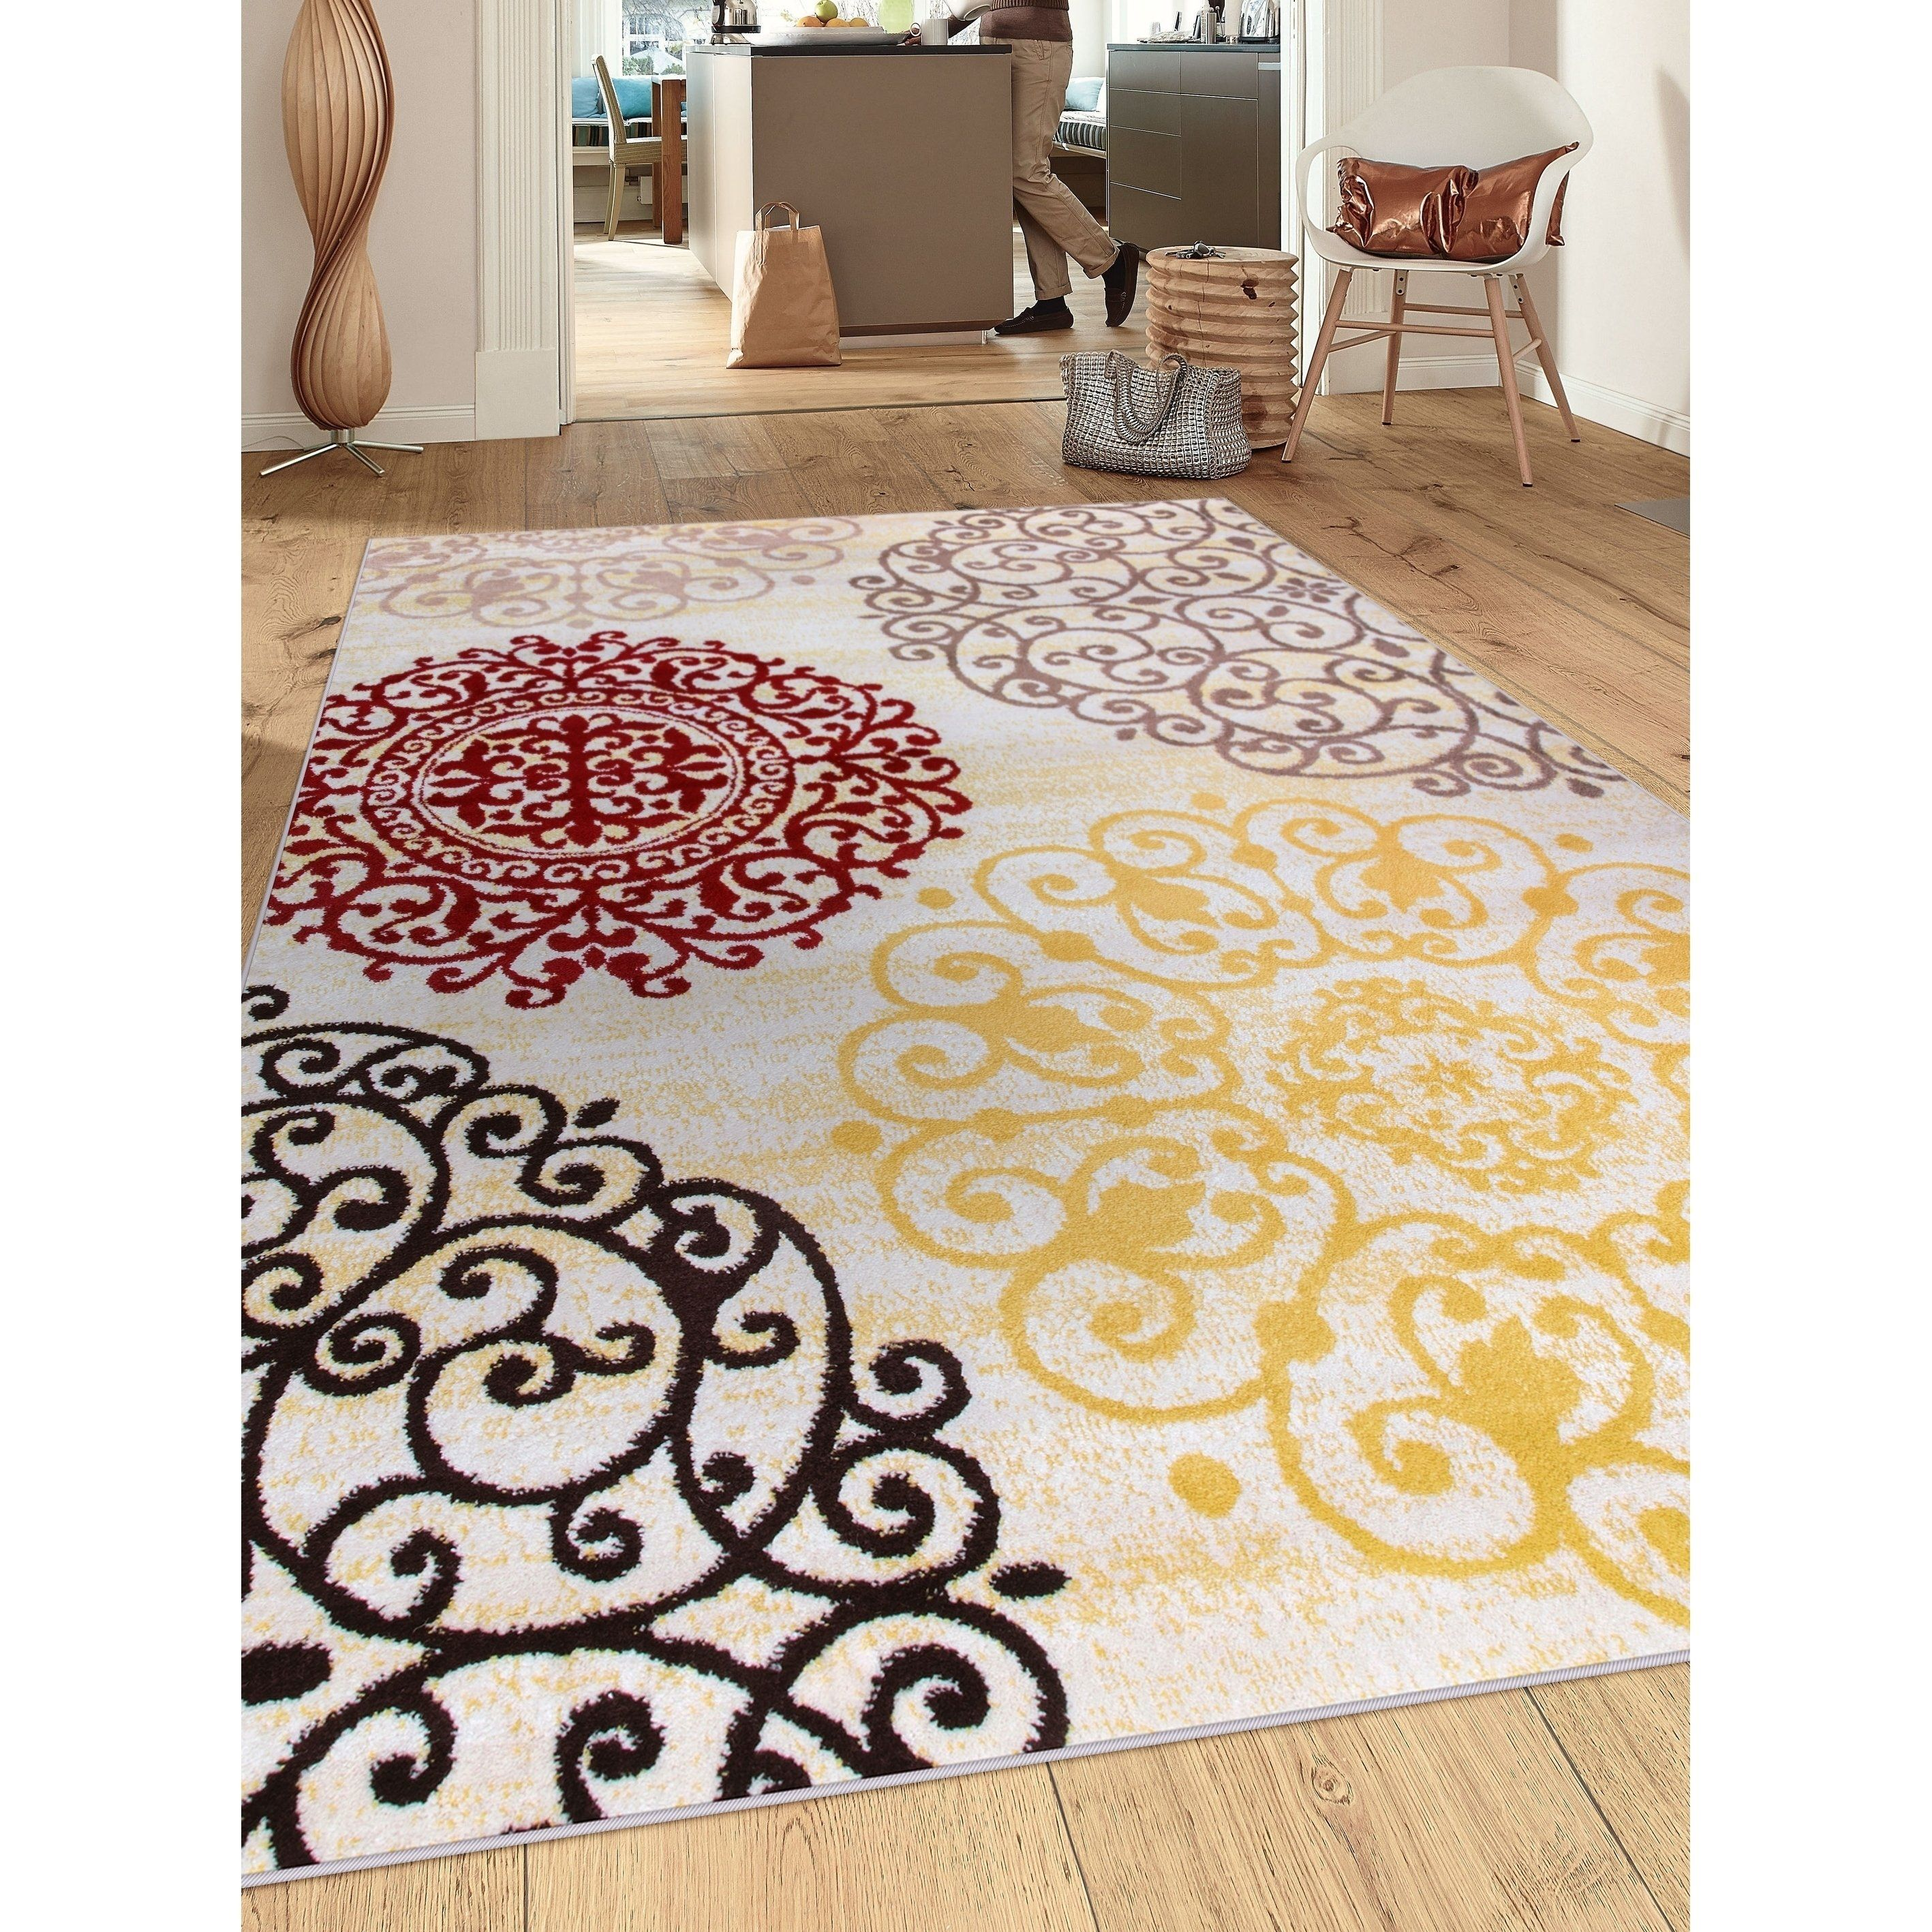 Overstock Com Online Shopping Bedding Furniture Electronics Jewelry Clothing More Floral Area Rugs Modern Area Rugs Area Rugs